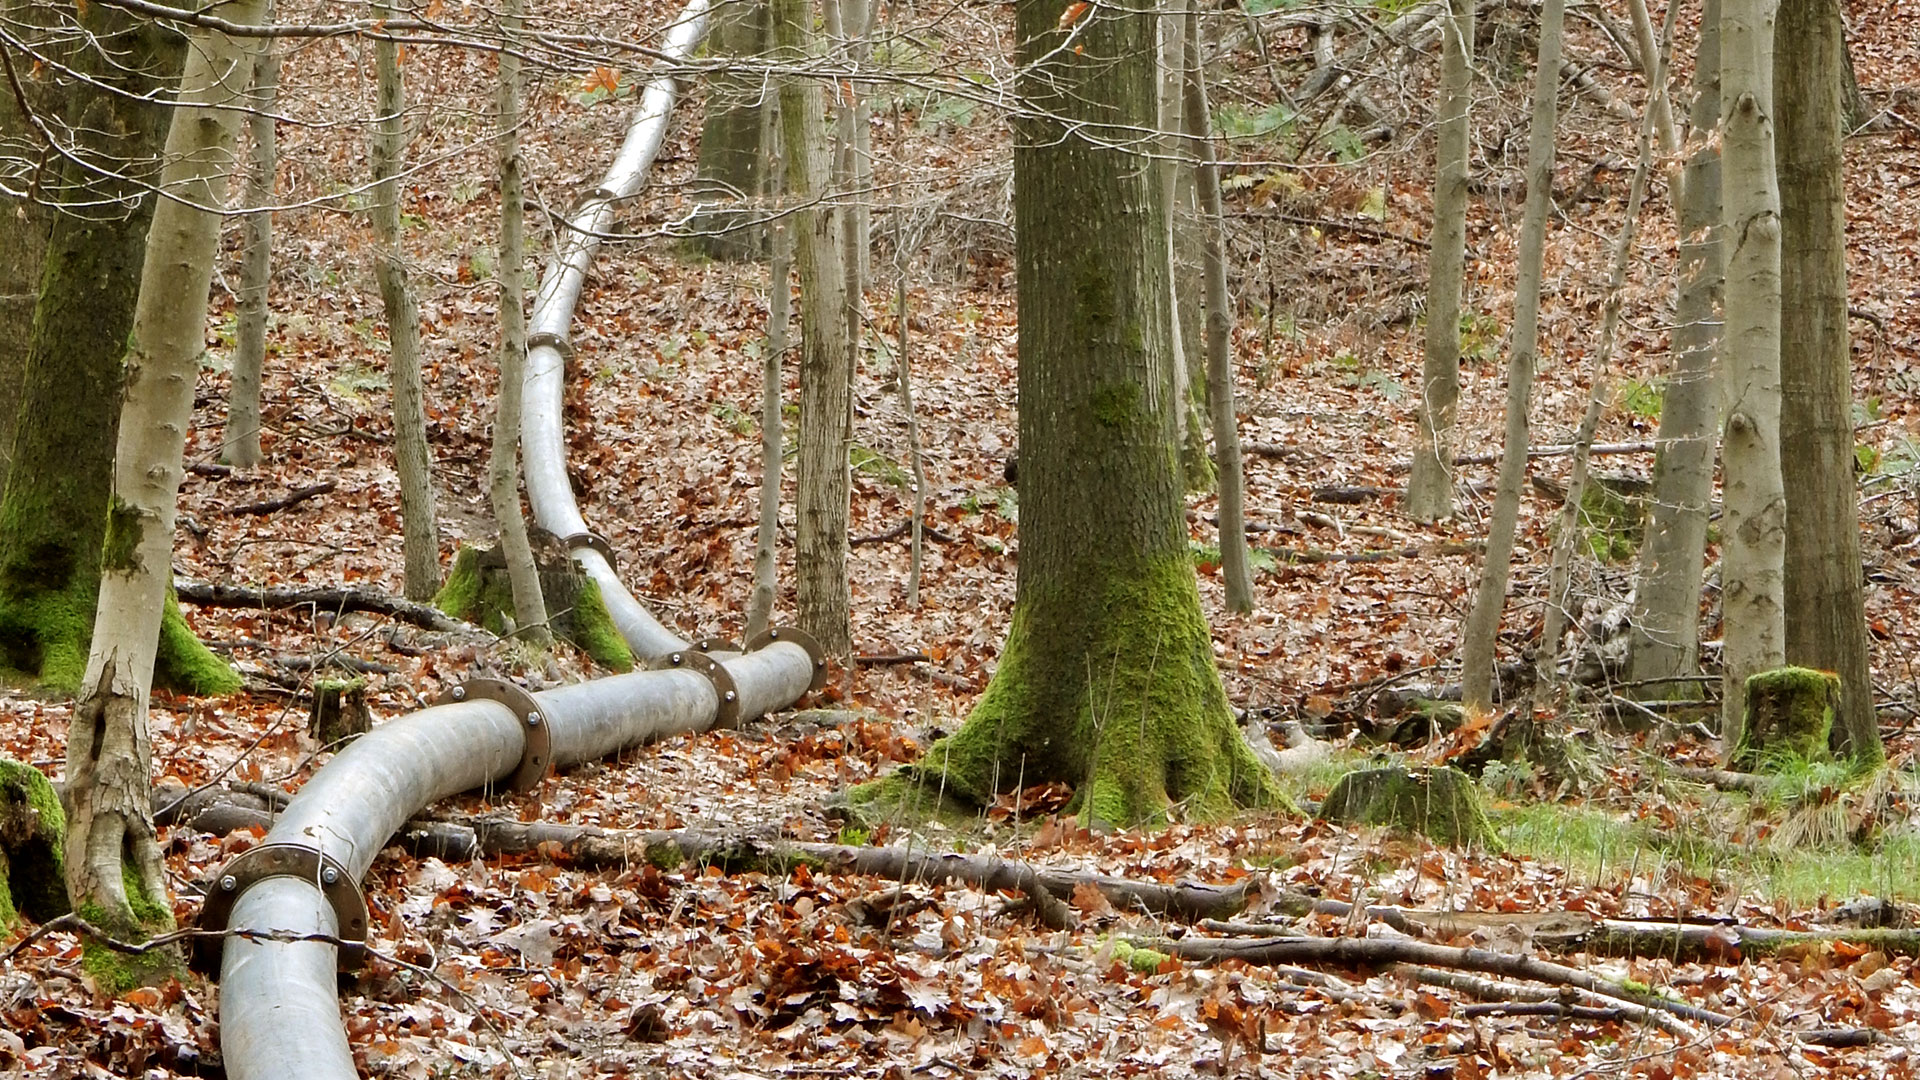 Over 3 km high-pressure pipelines.